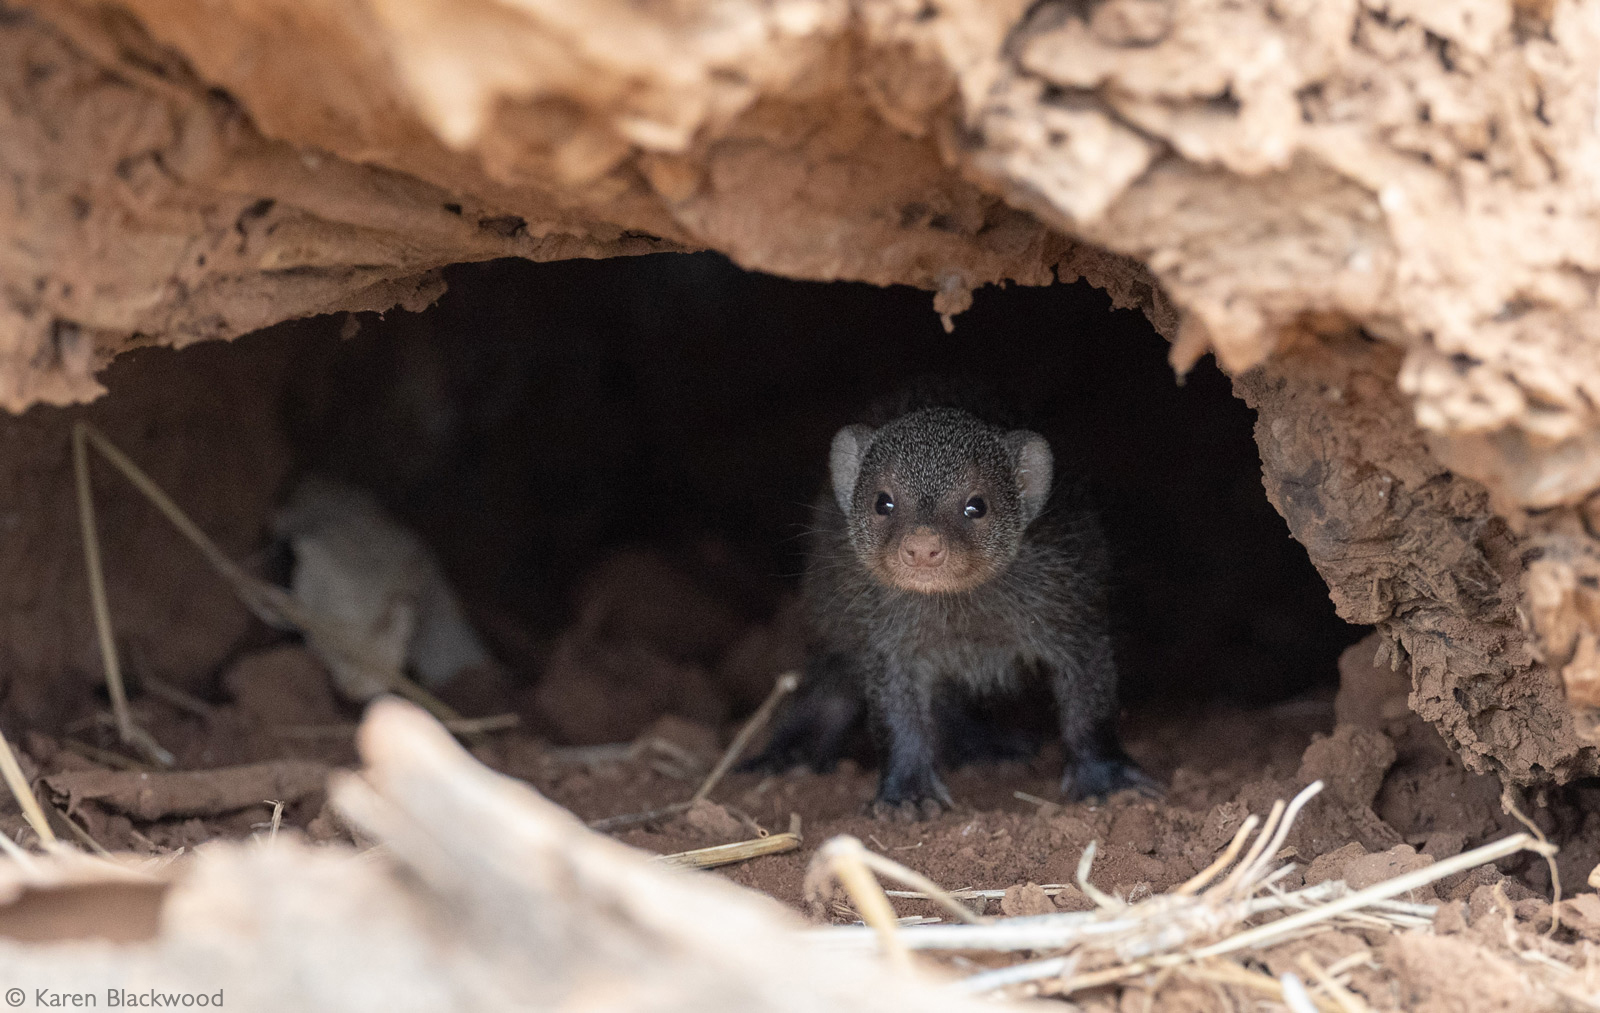 A baby dwarf mongoose peers out from one of the many entrances to the den. Kruger National Park, South Africa © Karen Blackwood